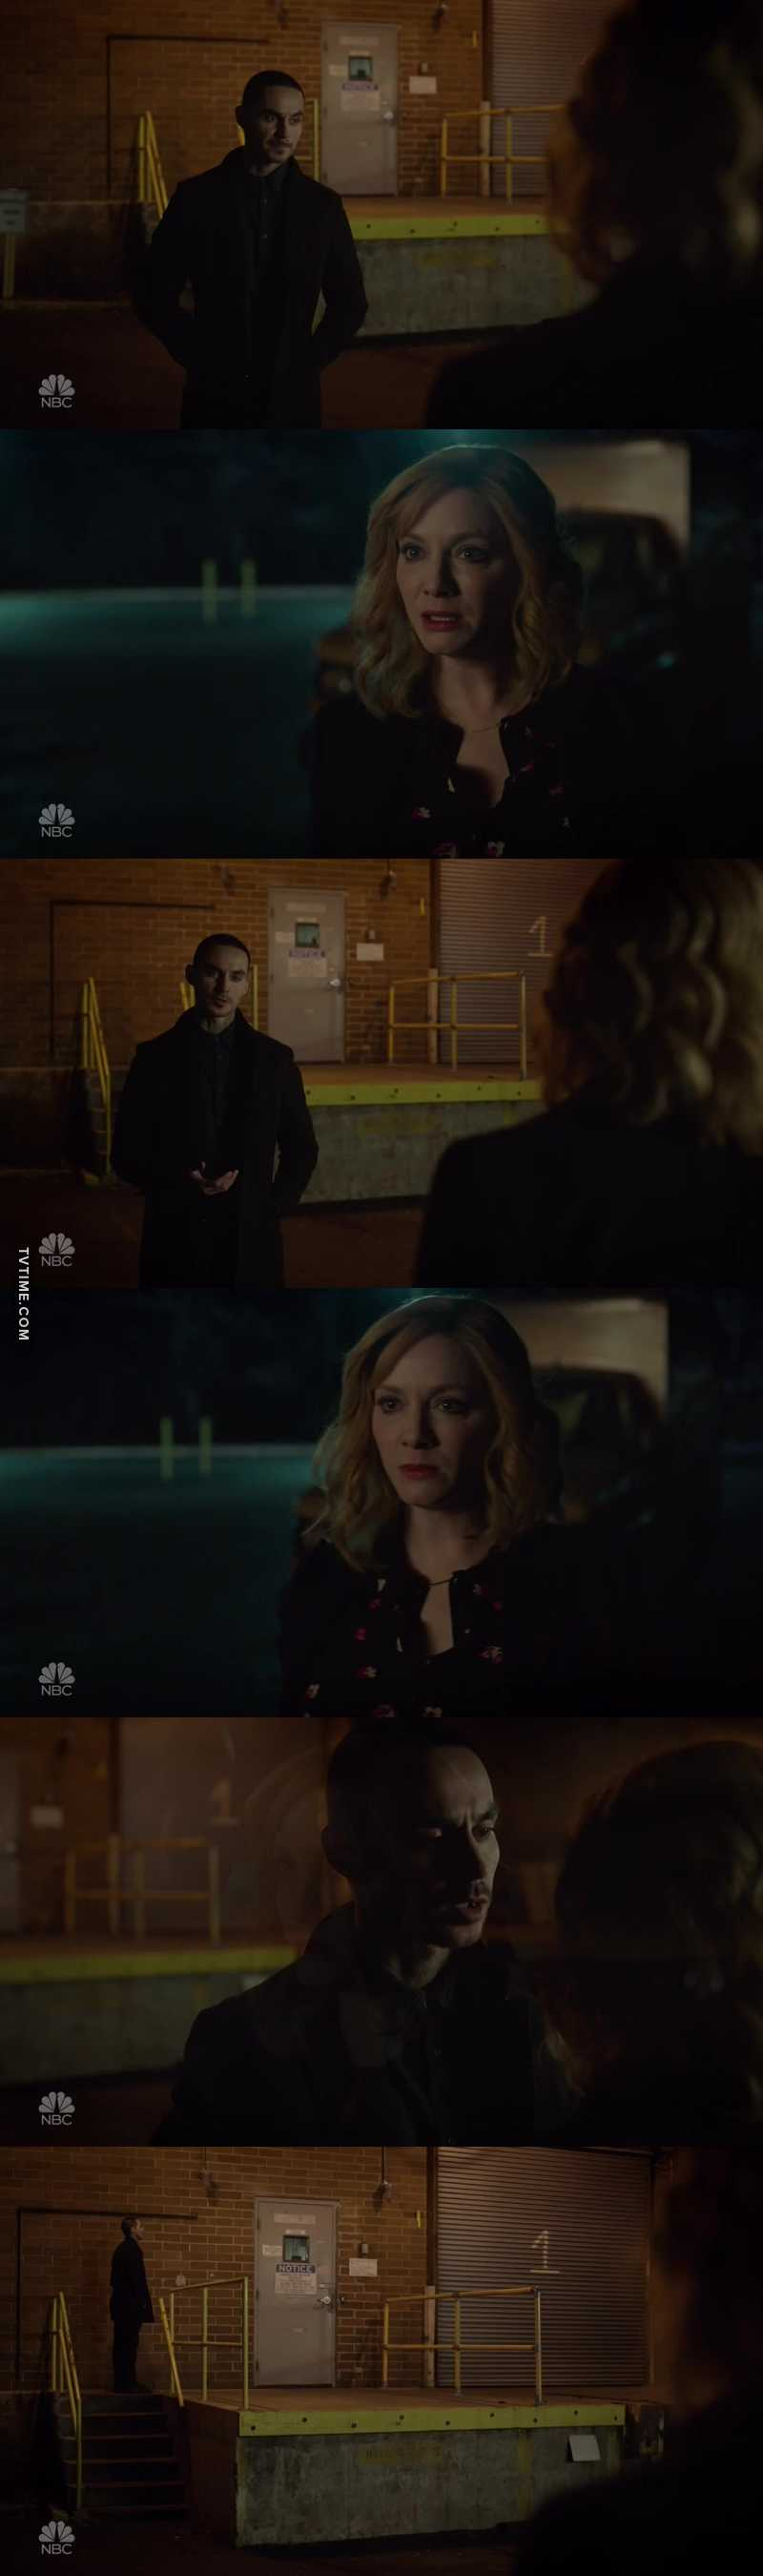 These scenes are sooo short! Rio is so mysterious! Ugh!